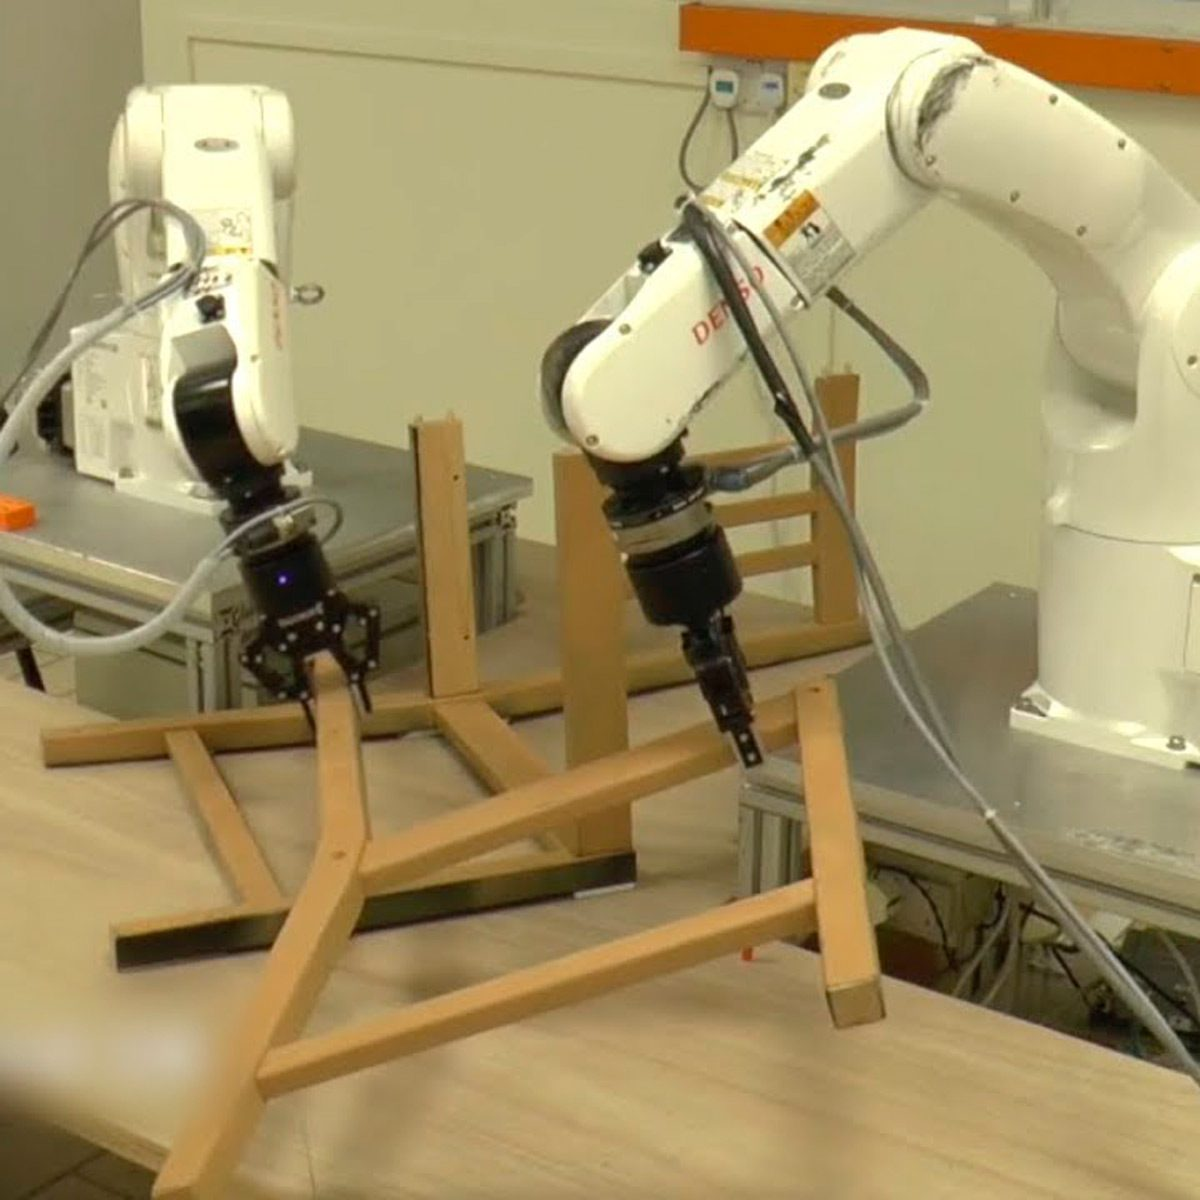 No Cursing Involved: This Robot Can Tackle IKEA Furniture Assembly